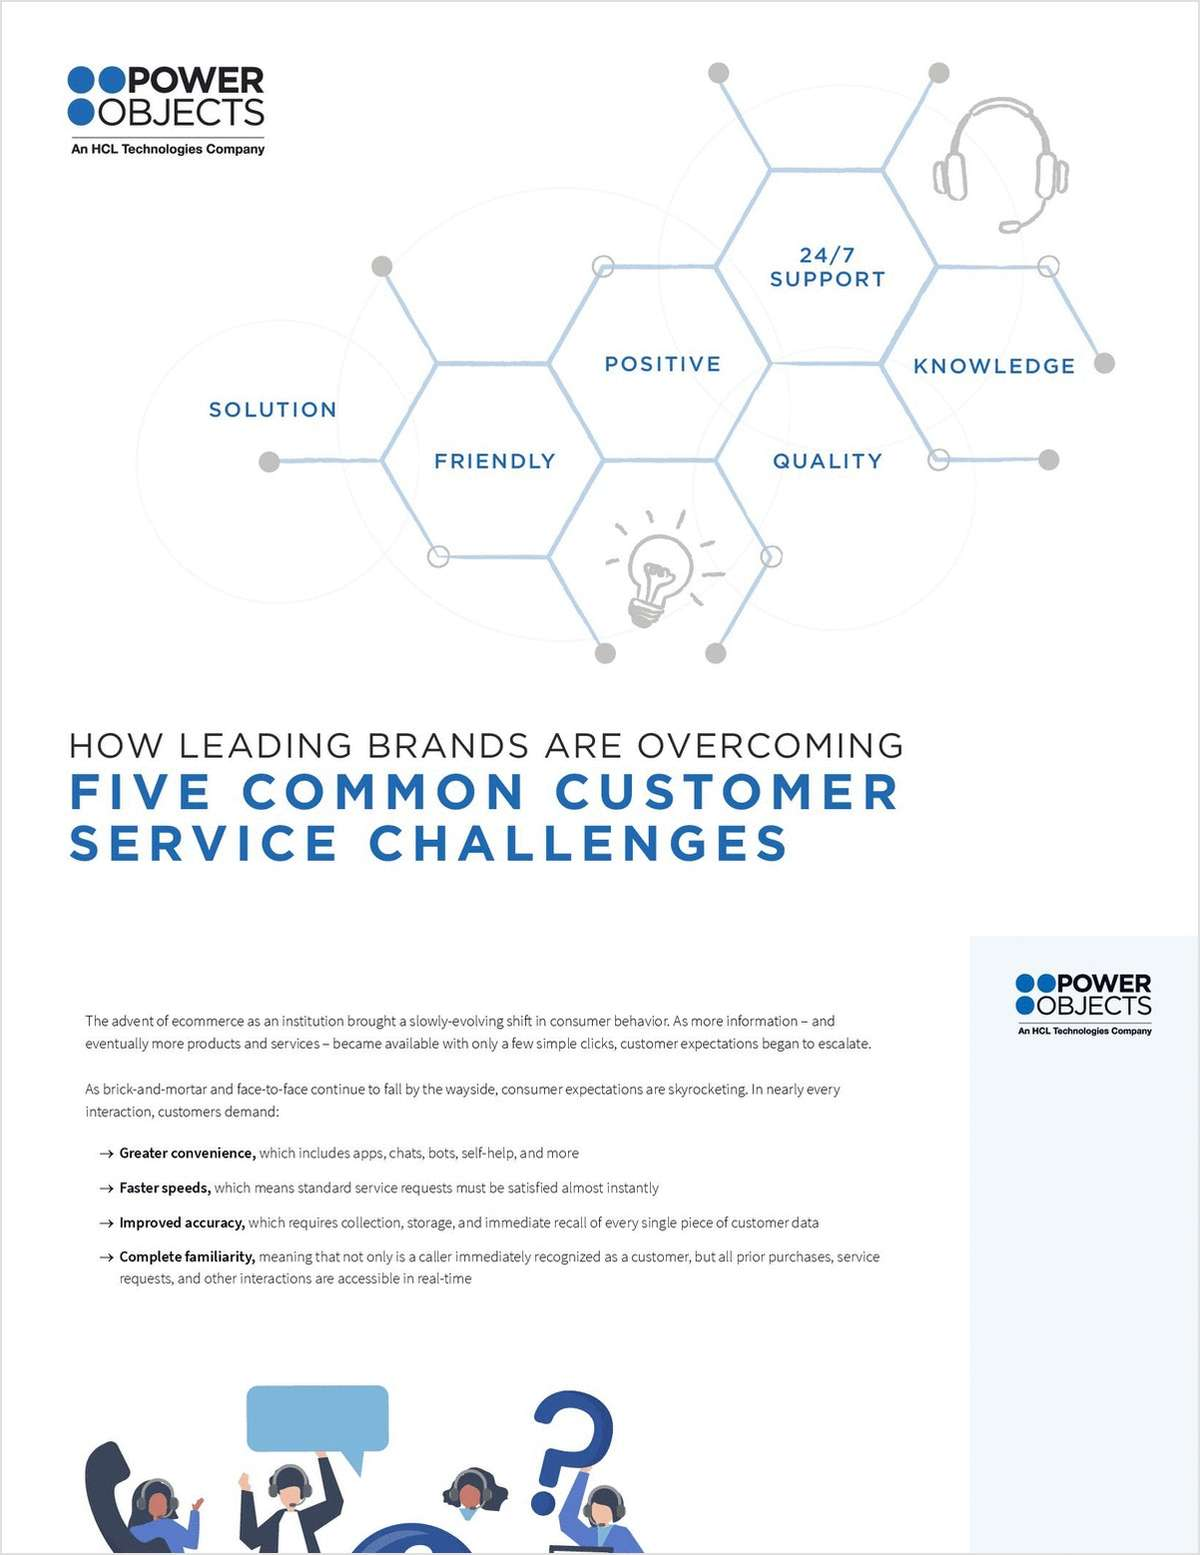 How Leading Brands Are Overcoming Five Common Customer Service Challenges